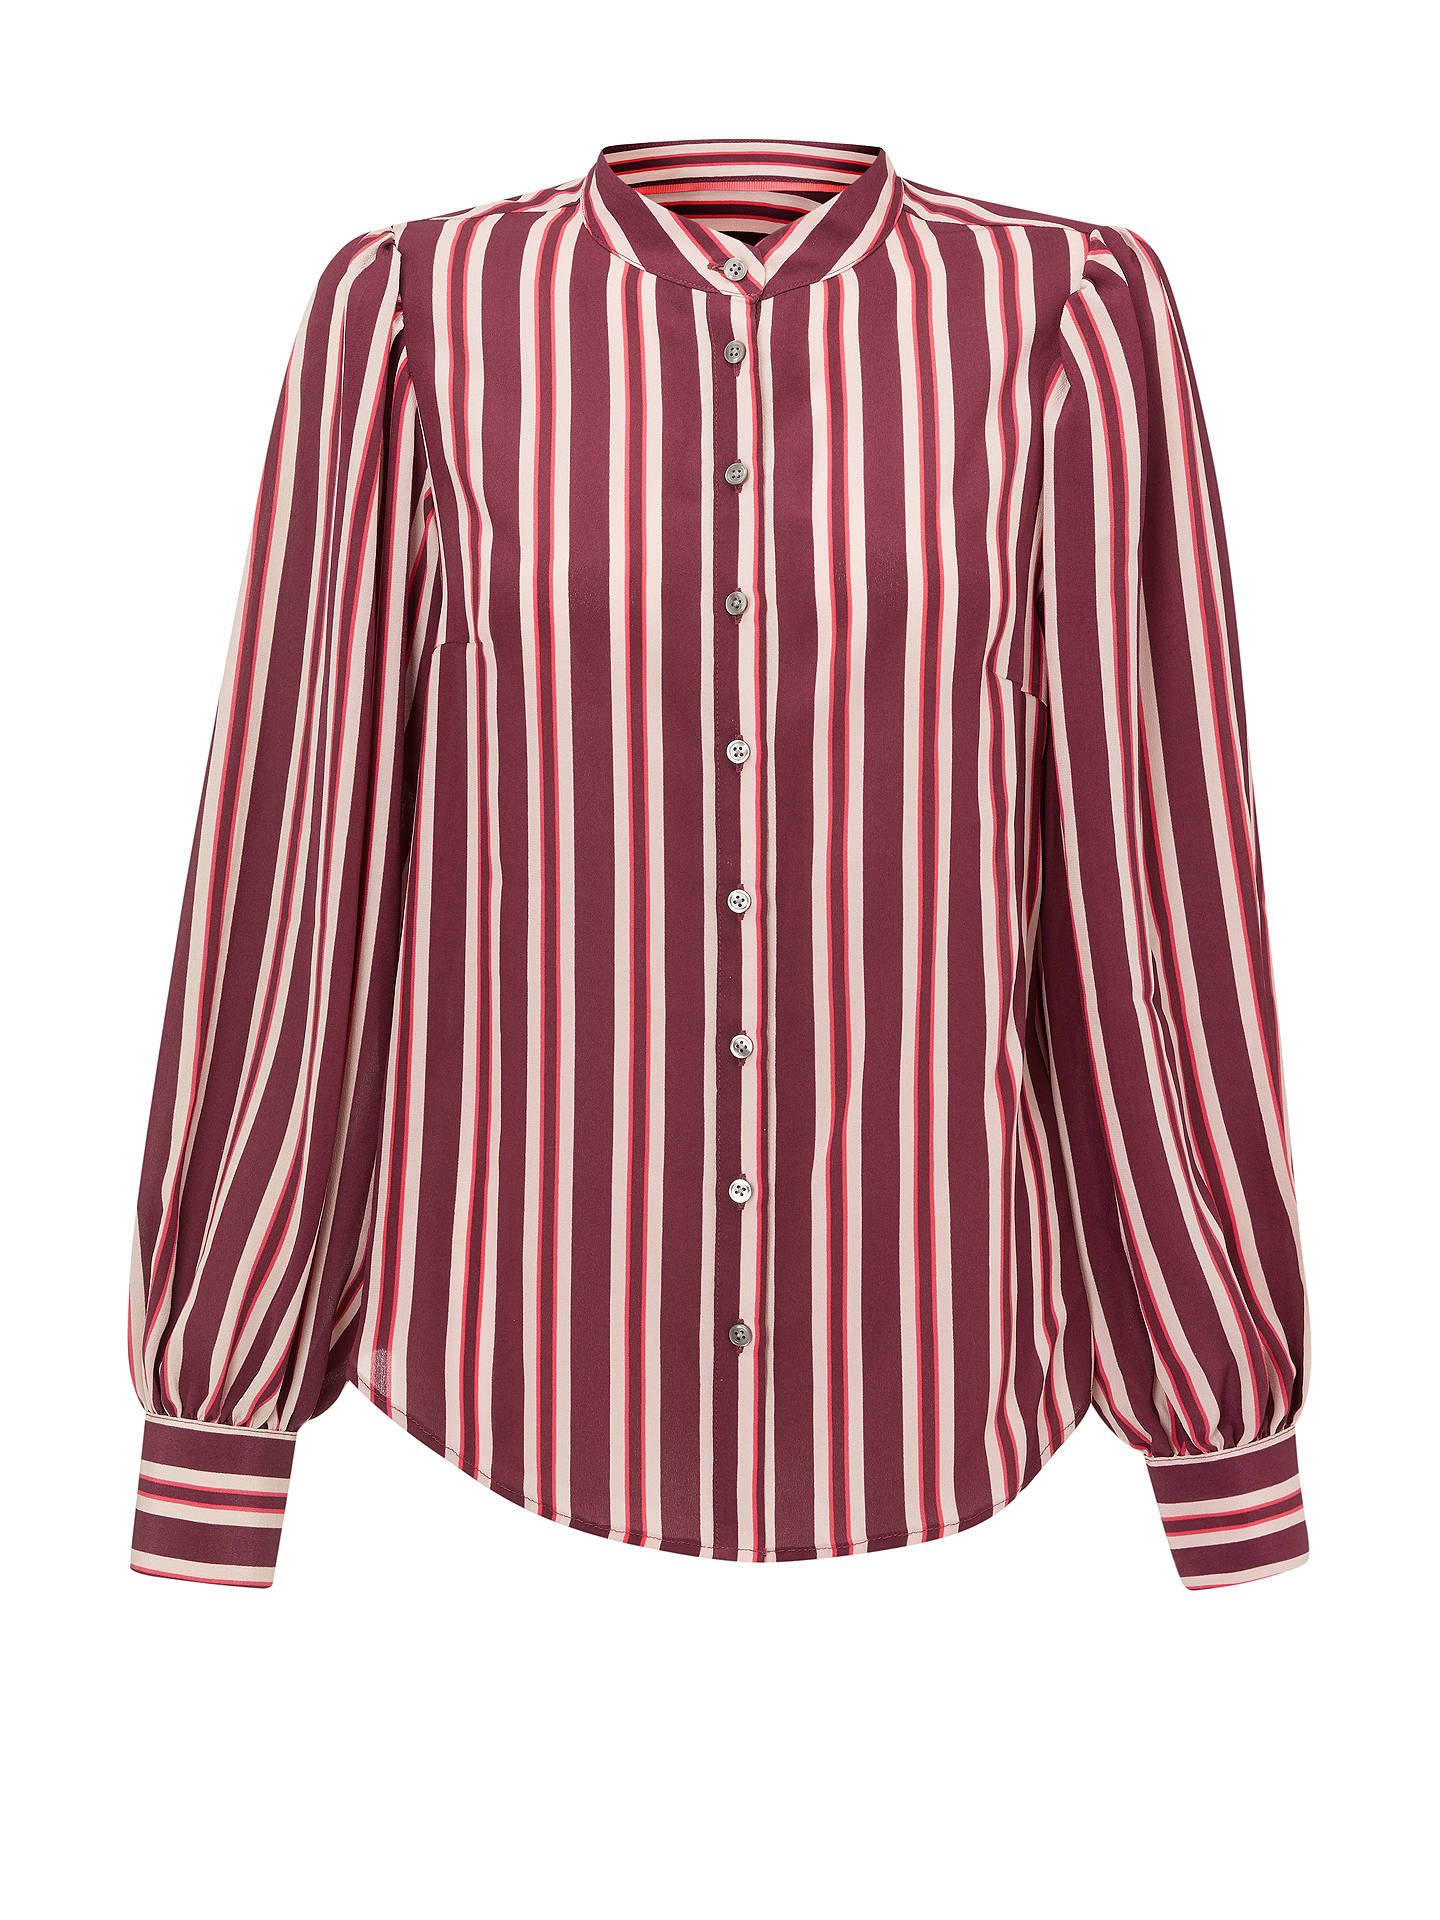 Buy Boden Blouse Silk Shirt, Red, 8 Online at johnlewis.com